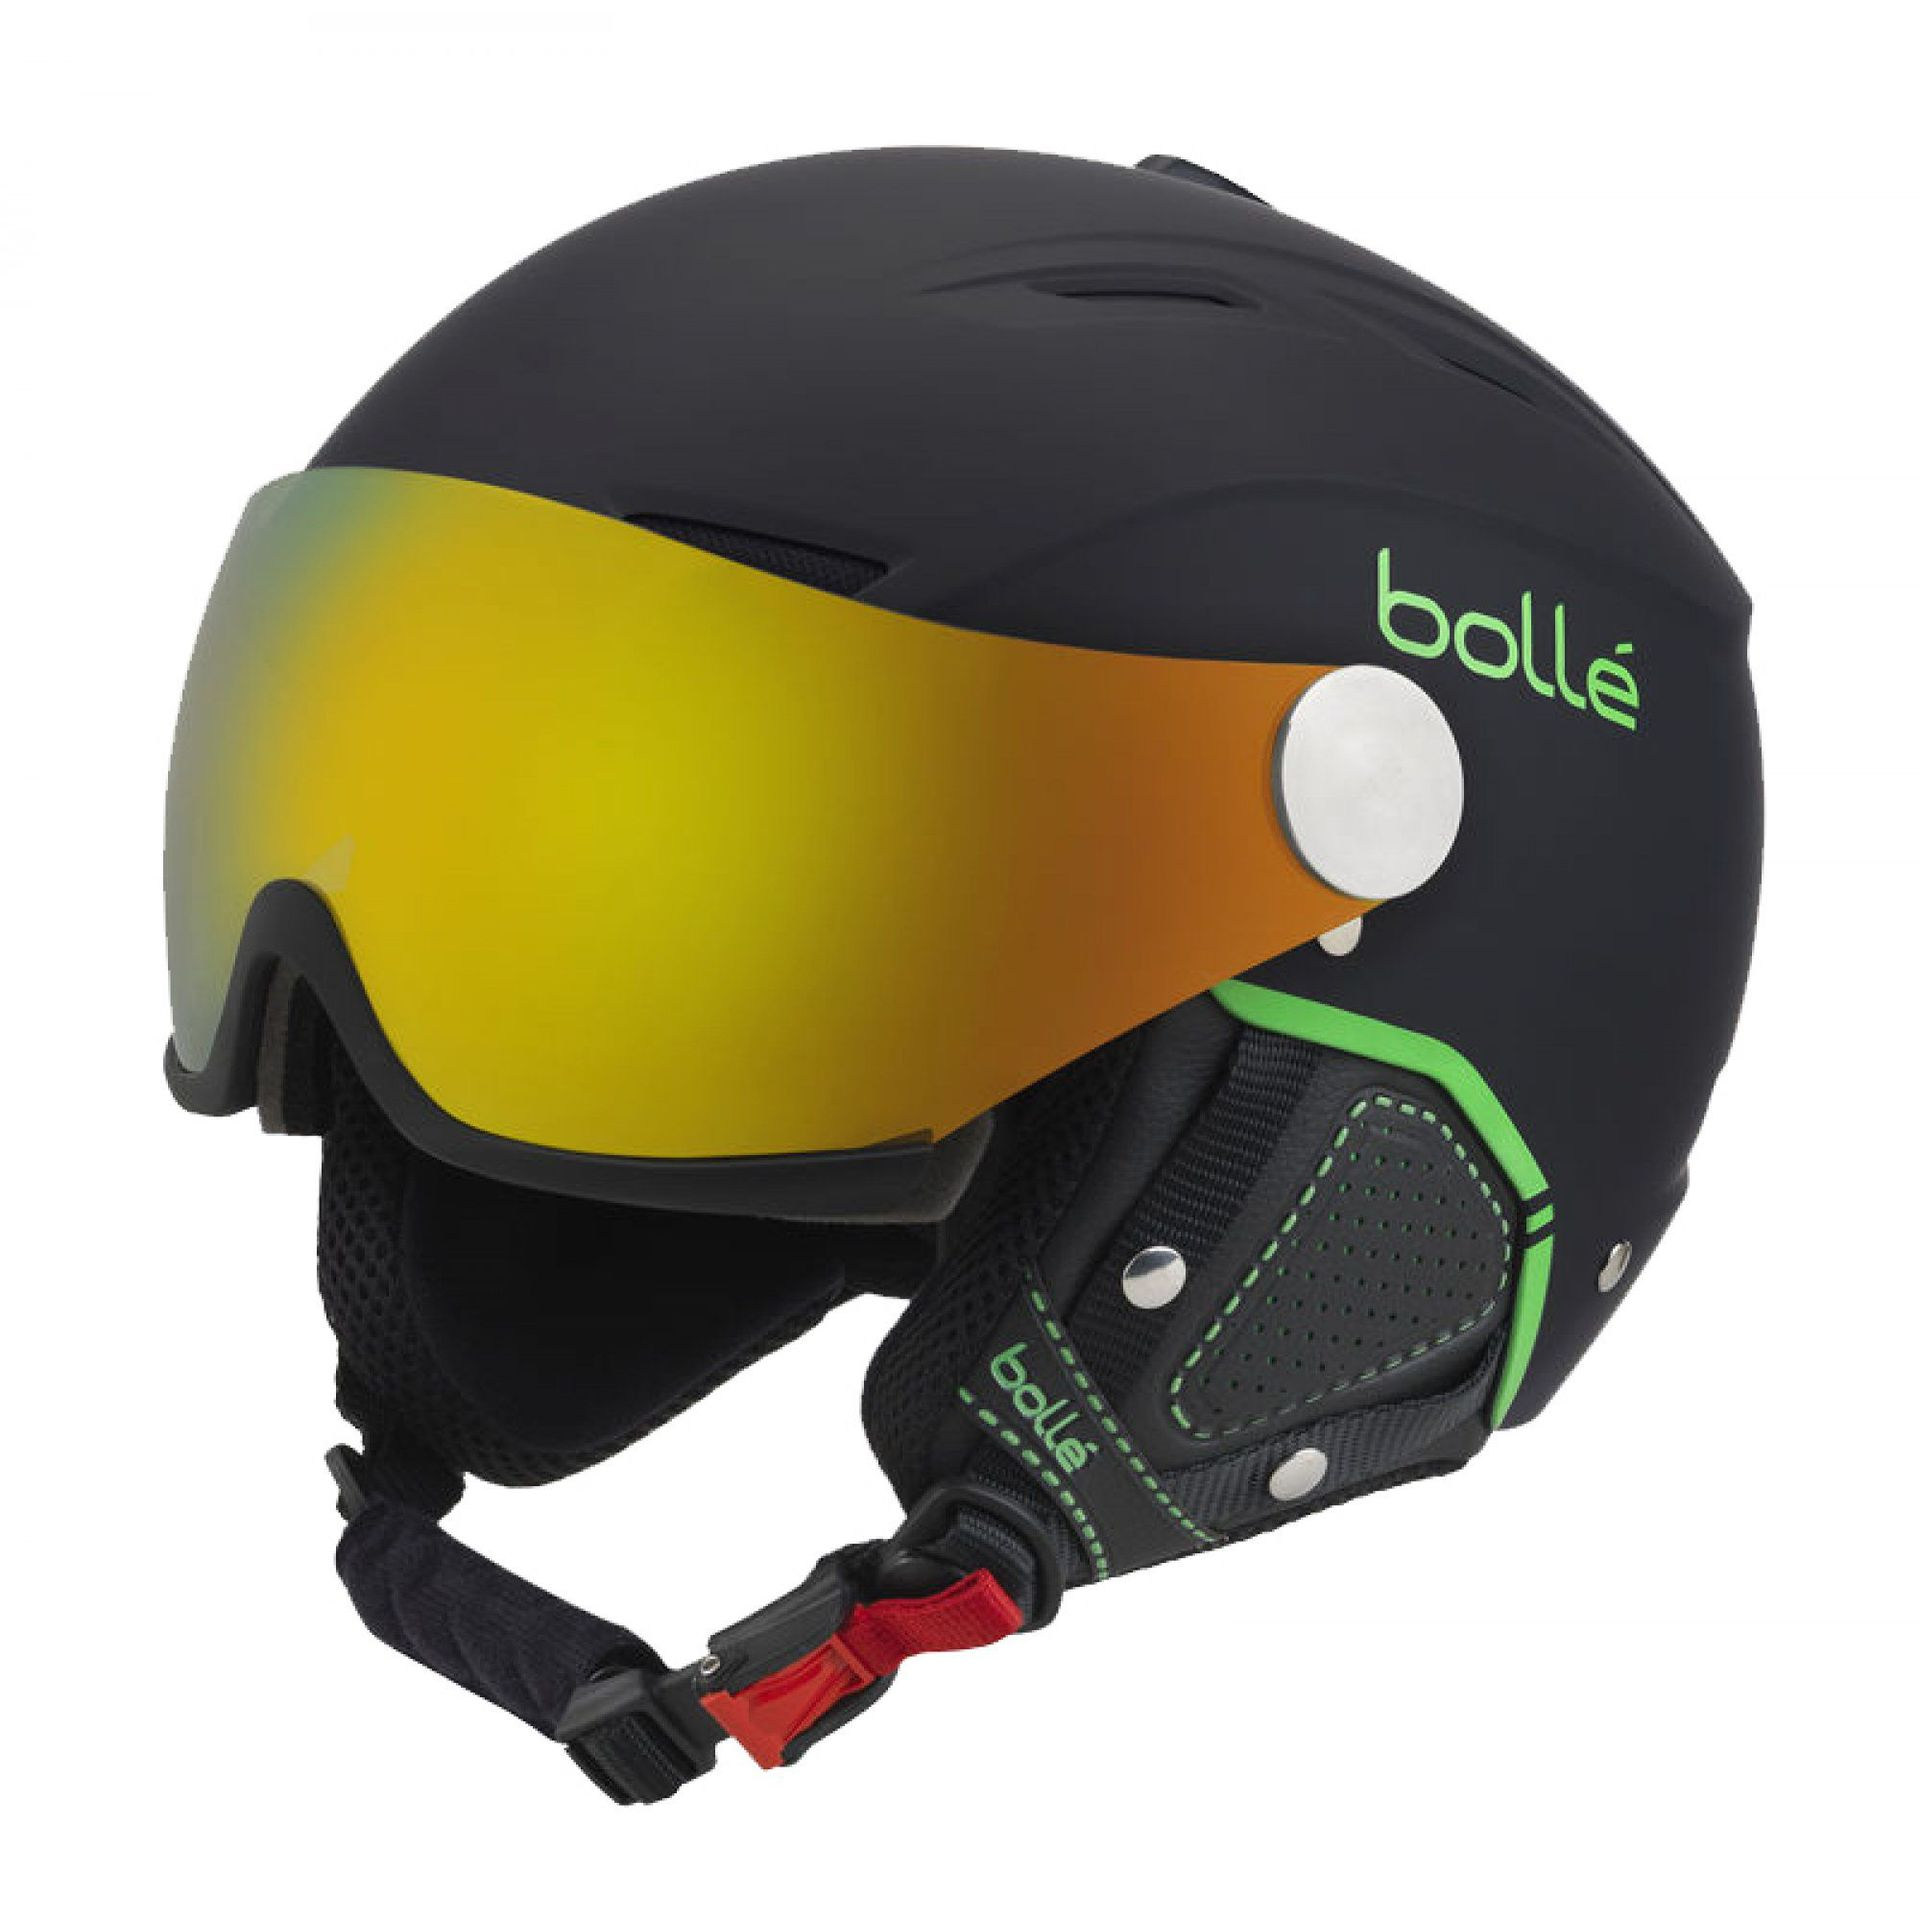 KASK BOLLE BACKLINE VISOR PREMIUM SOFT BLACK|GREEN FIRE GREEN|LEMON VISOR